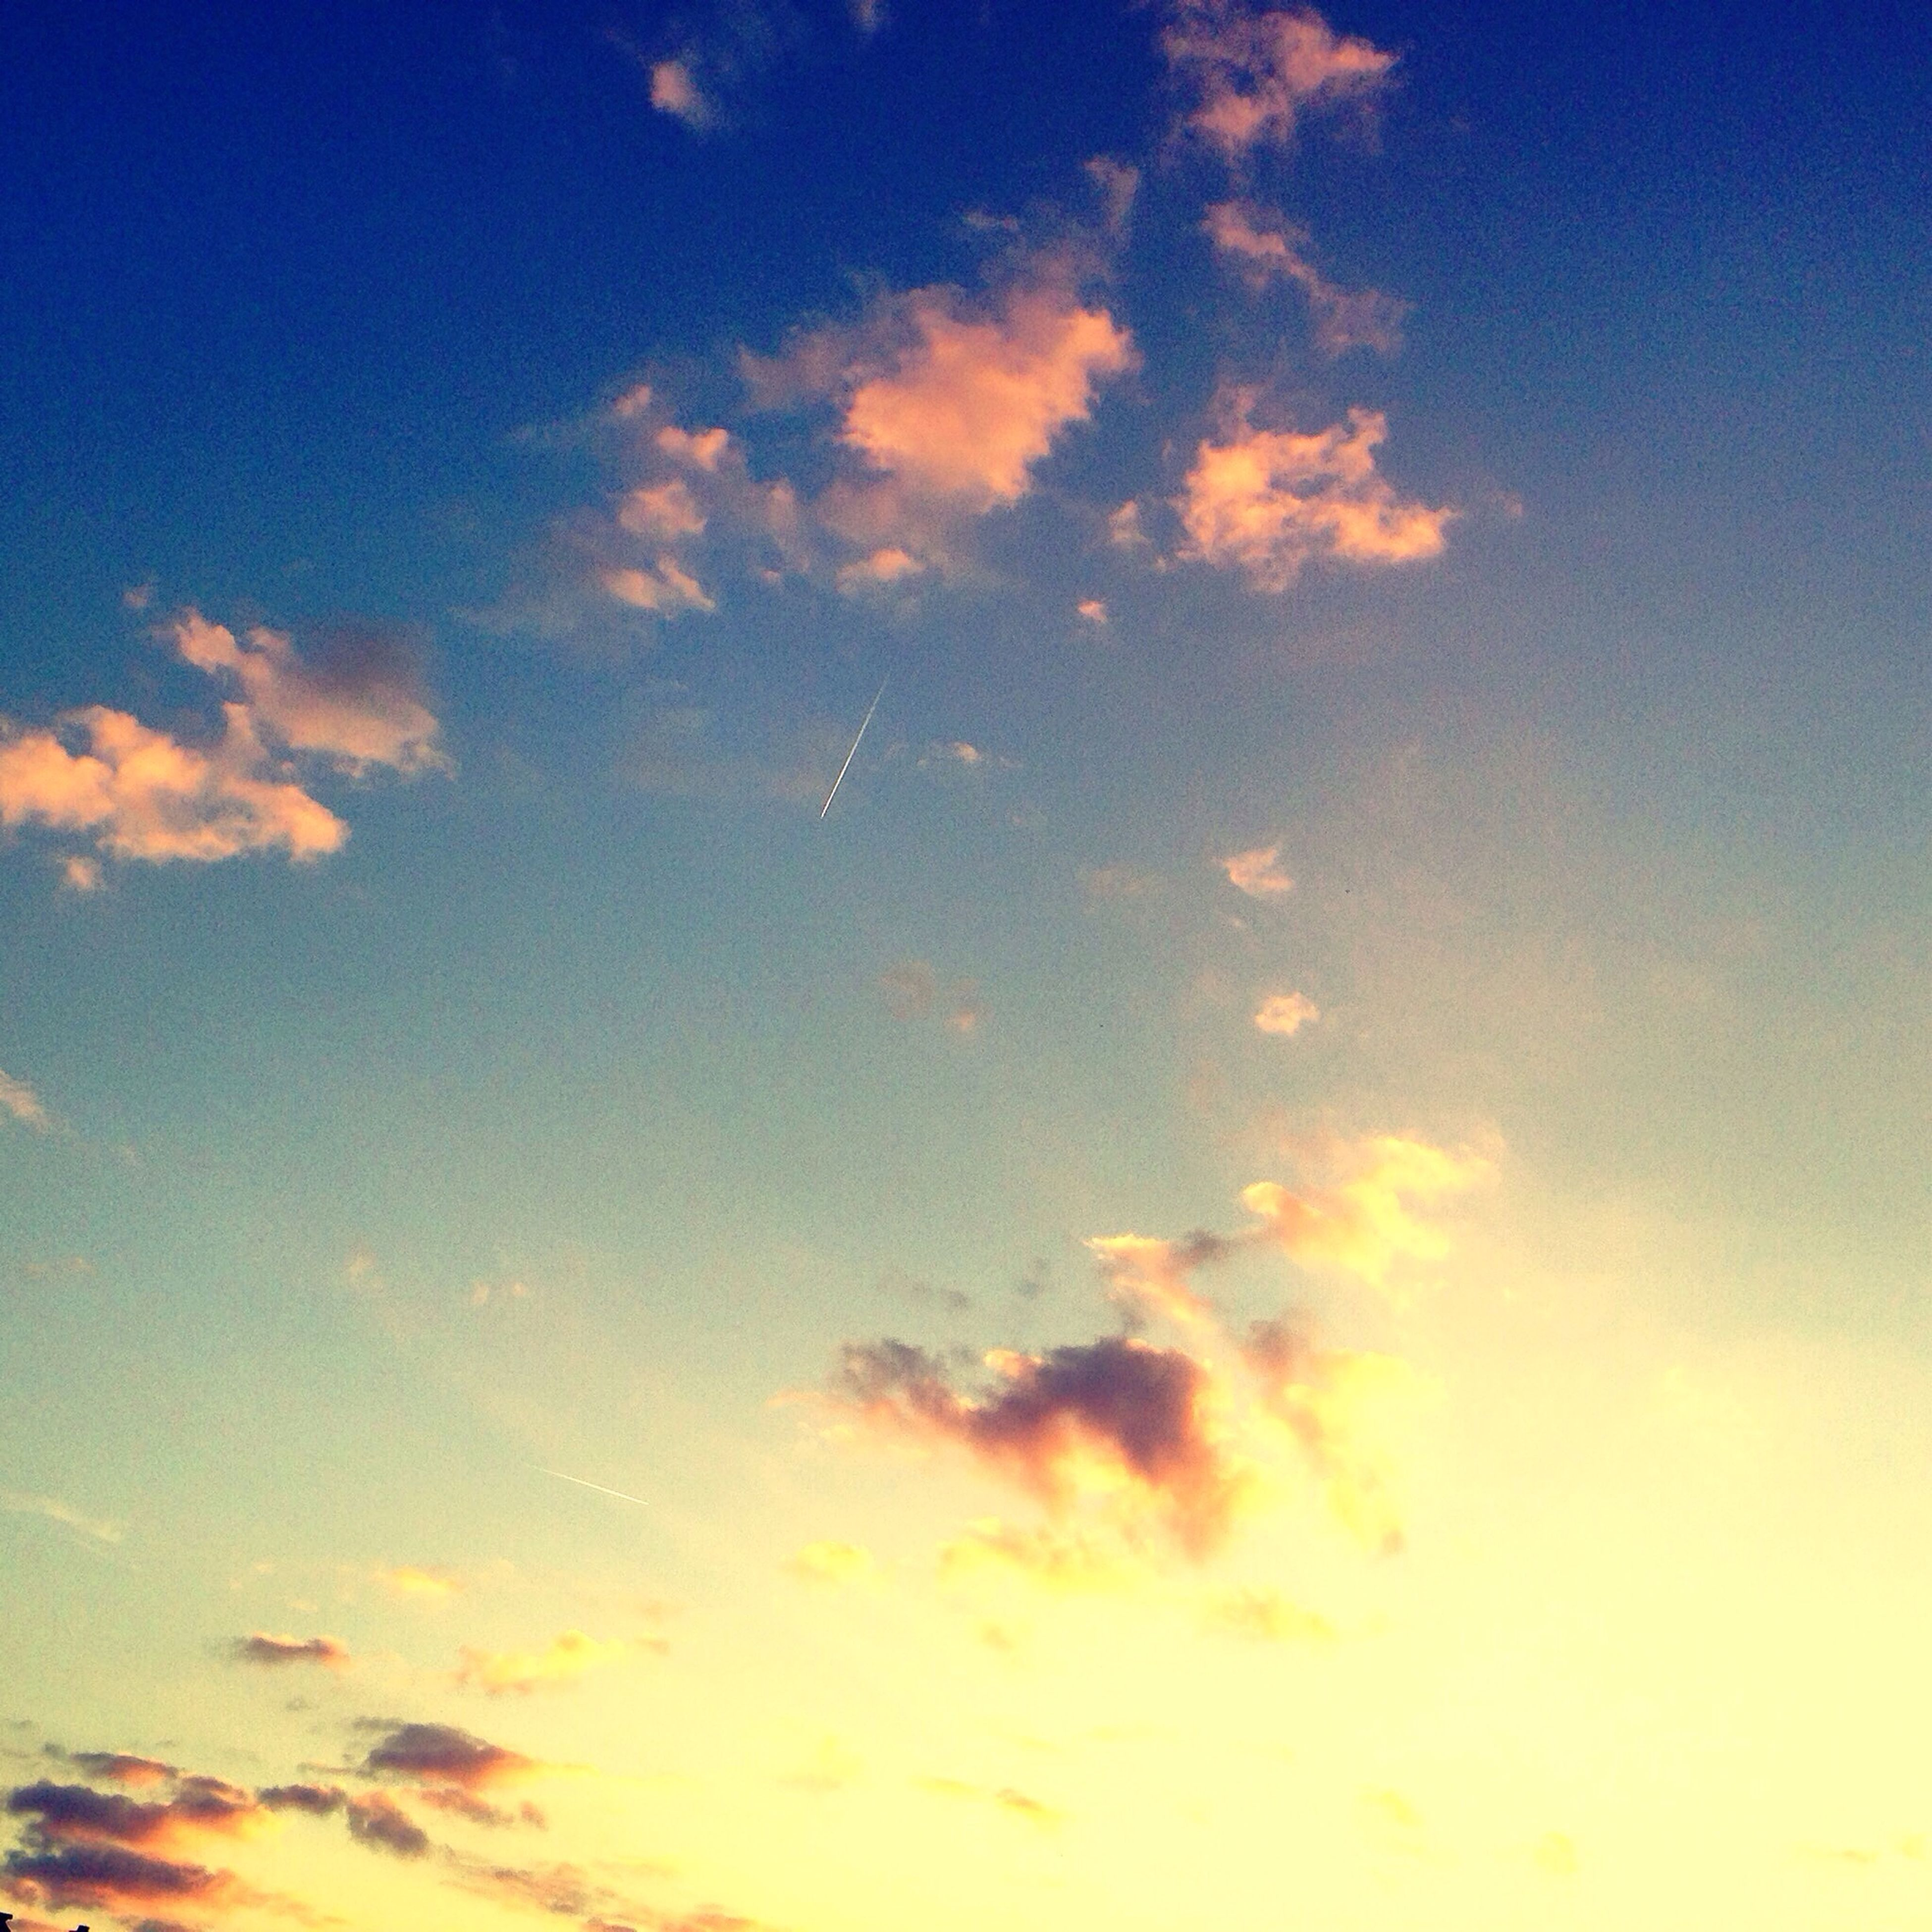 sky, low angle view, beauty in nature, cloud - sky, tranquility, blue, scenics, tranquil scene, sky only, sunset, nature, backgrounds, idyllic, cloud, cloudscape, full frame, outdoors, cloudy, orange color, no people